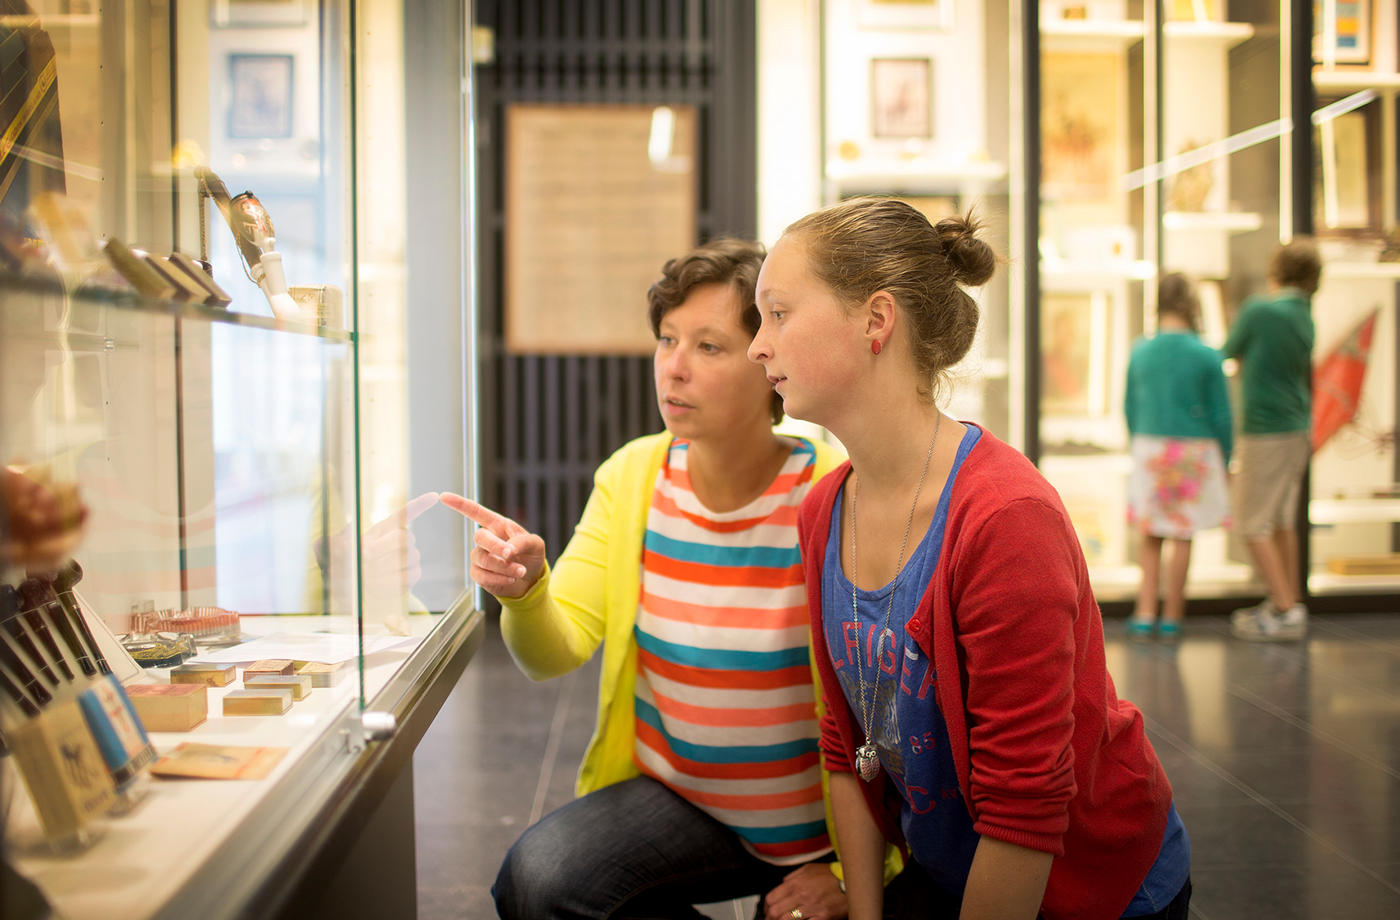 Two museum visitors observing a glass case of exhibit objects.